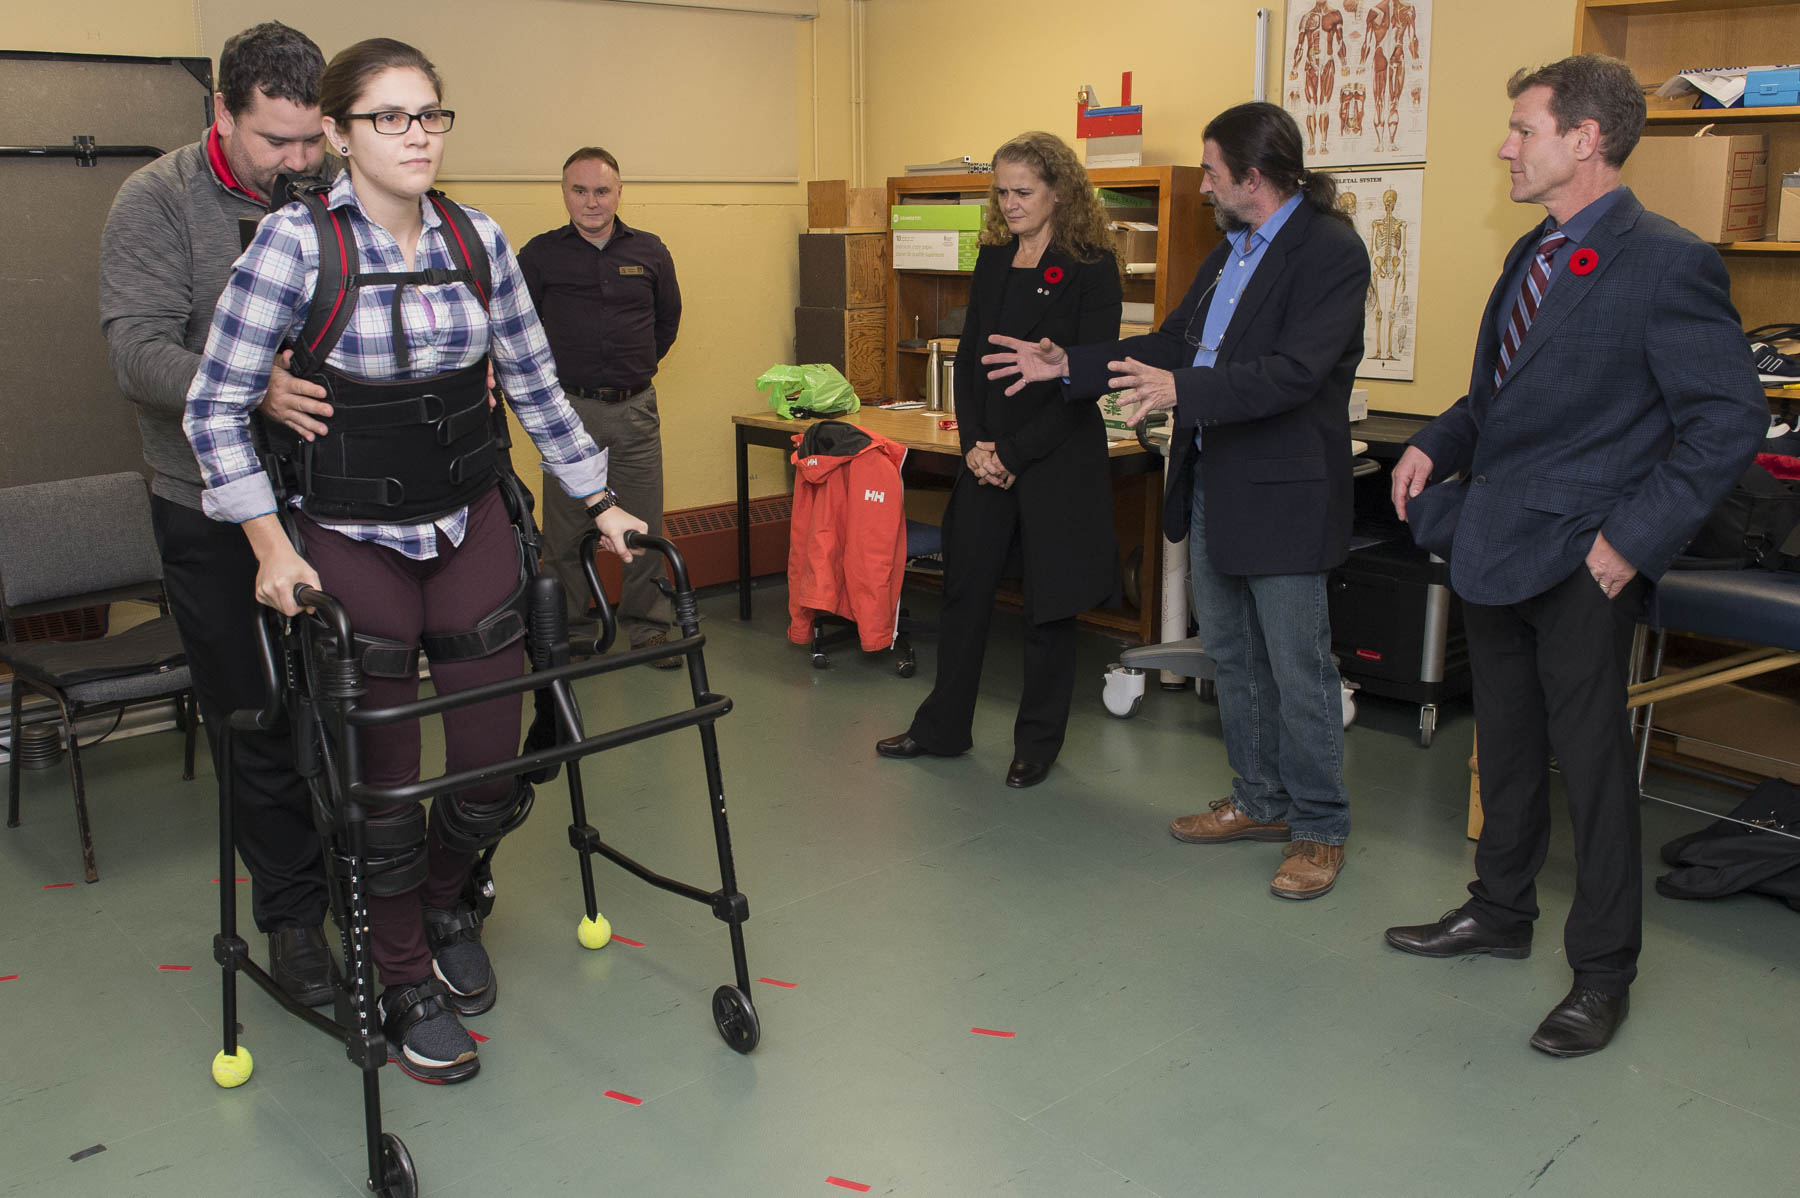 In the afternoon, the Governor General toured the Institute of Biomedical Engineering's innovative prosthetics labs at the University of New Brunswick.